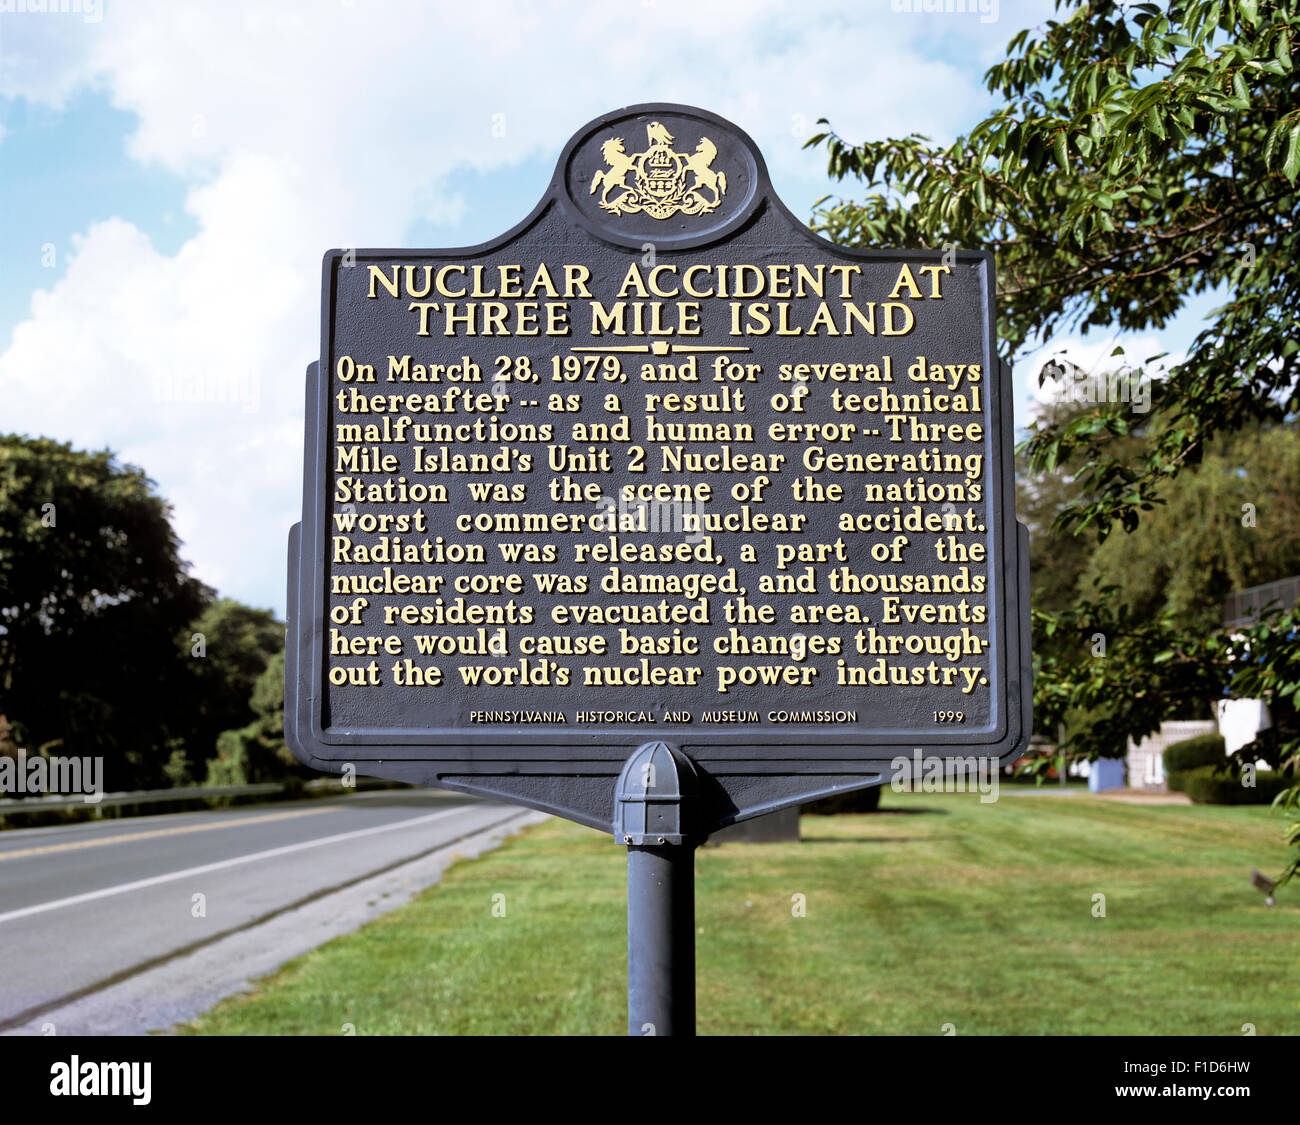 Sign near the Three Mile Island nuclear power station, Pennsylvania, USA, commemorating the 1979 nuclear accident. - Stock Image